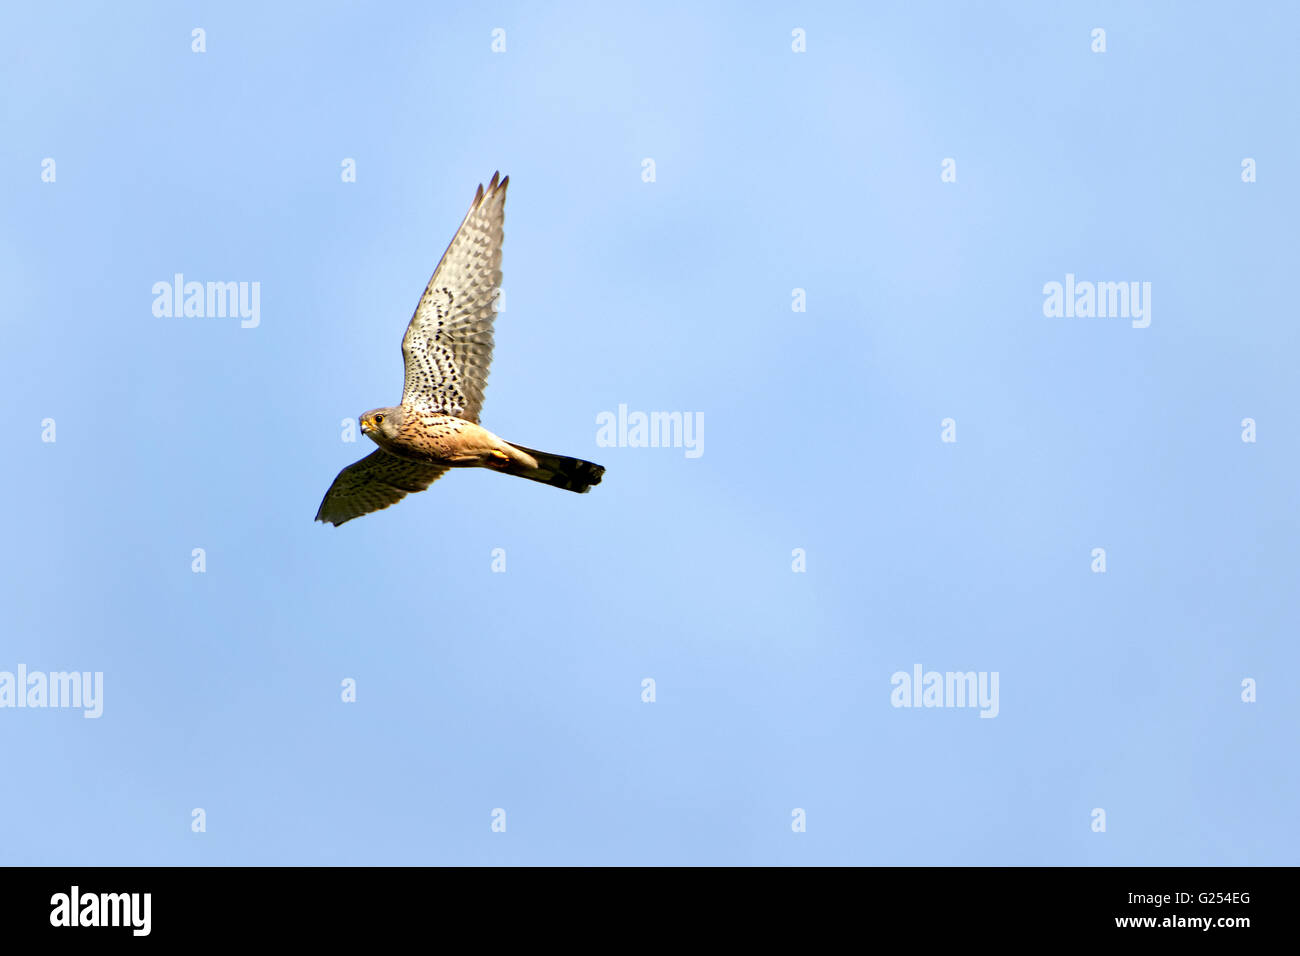 Lesser Kestrel (Falco naumanni), adult male in flight, Upper Bavaria, Germany, Europe Stock Photo